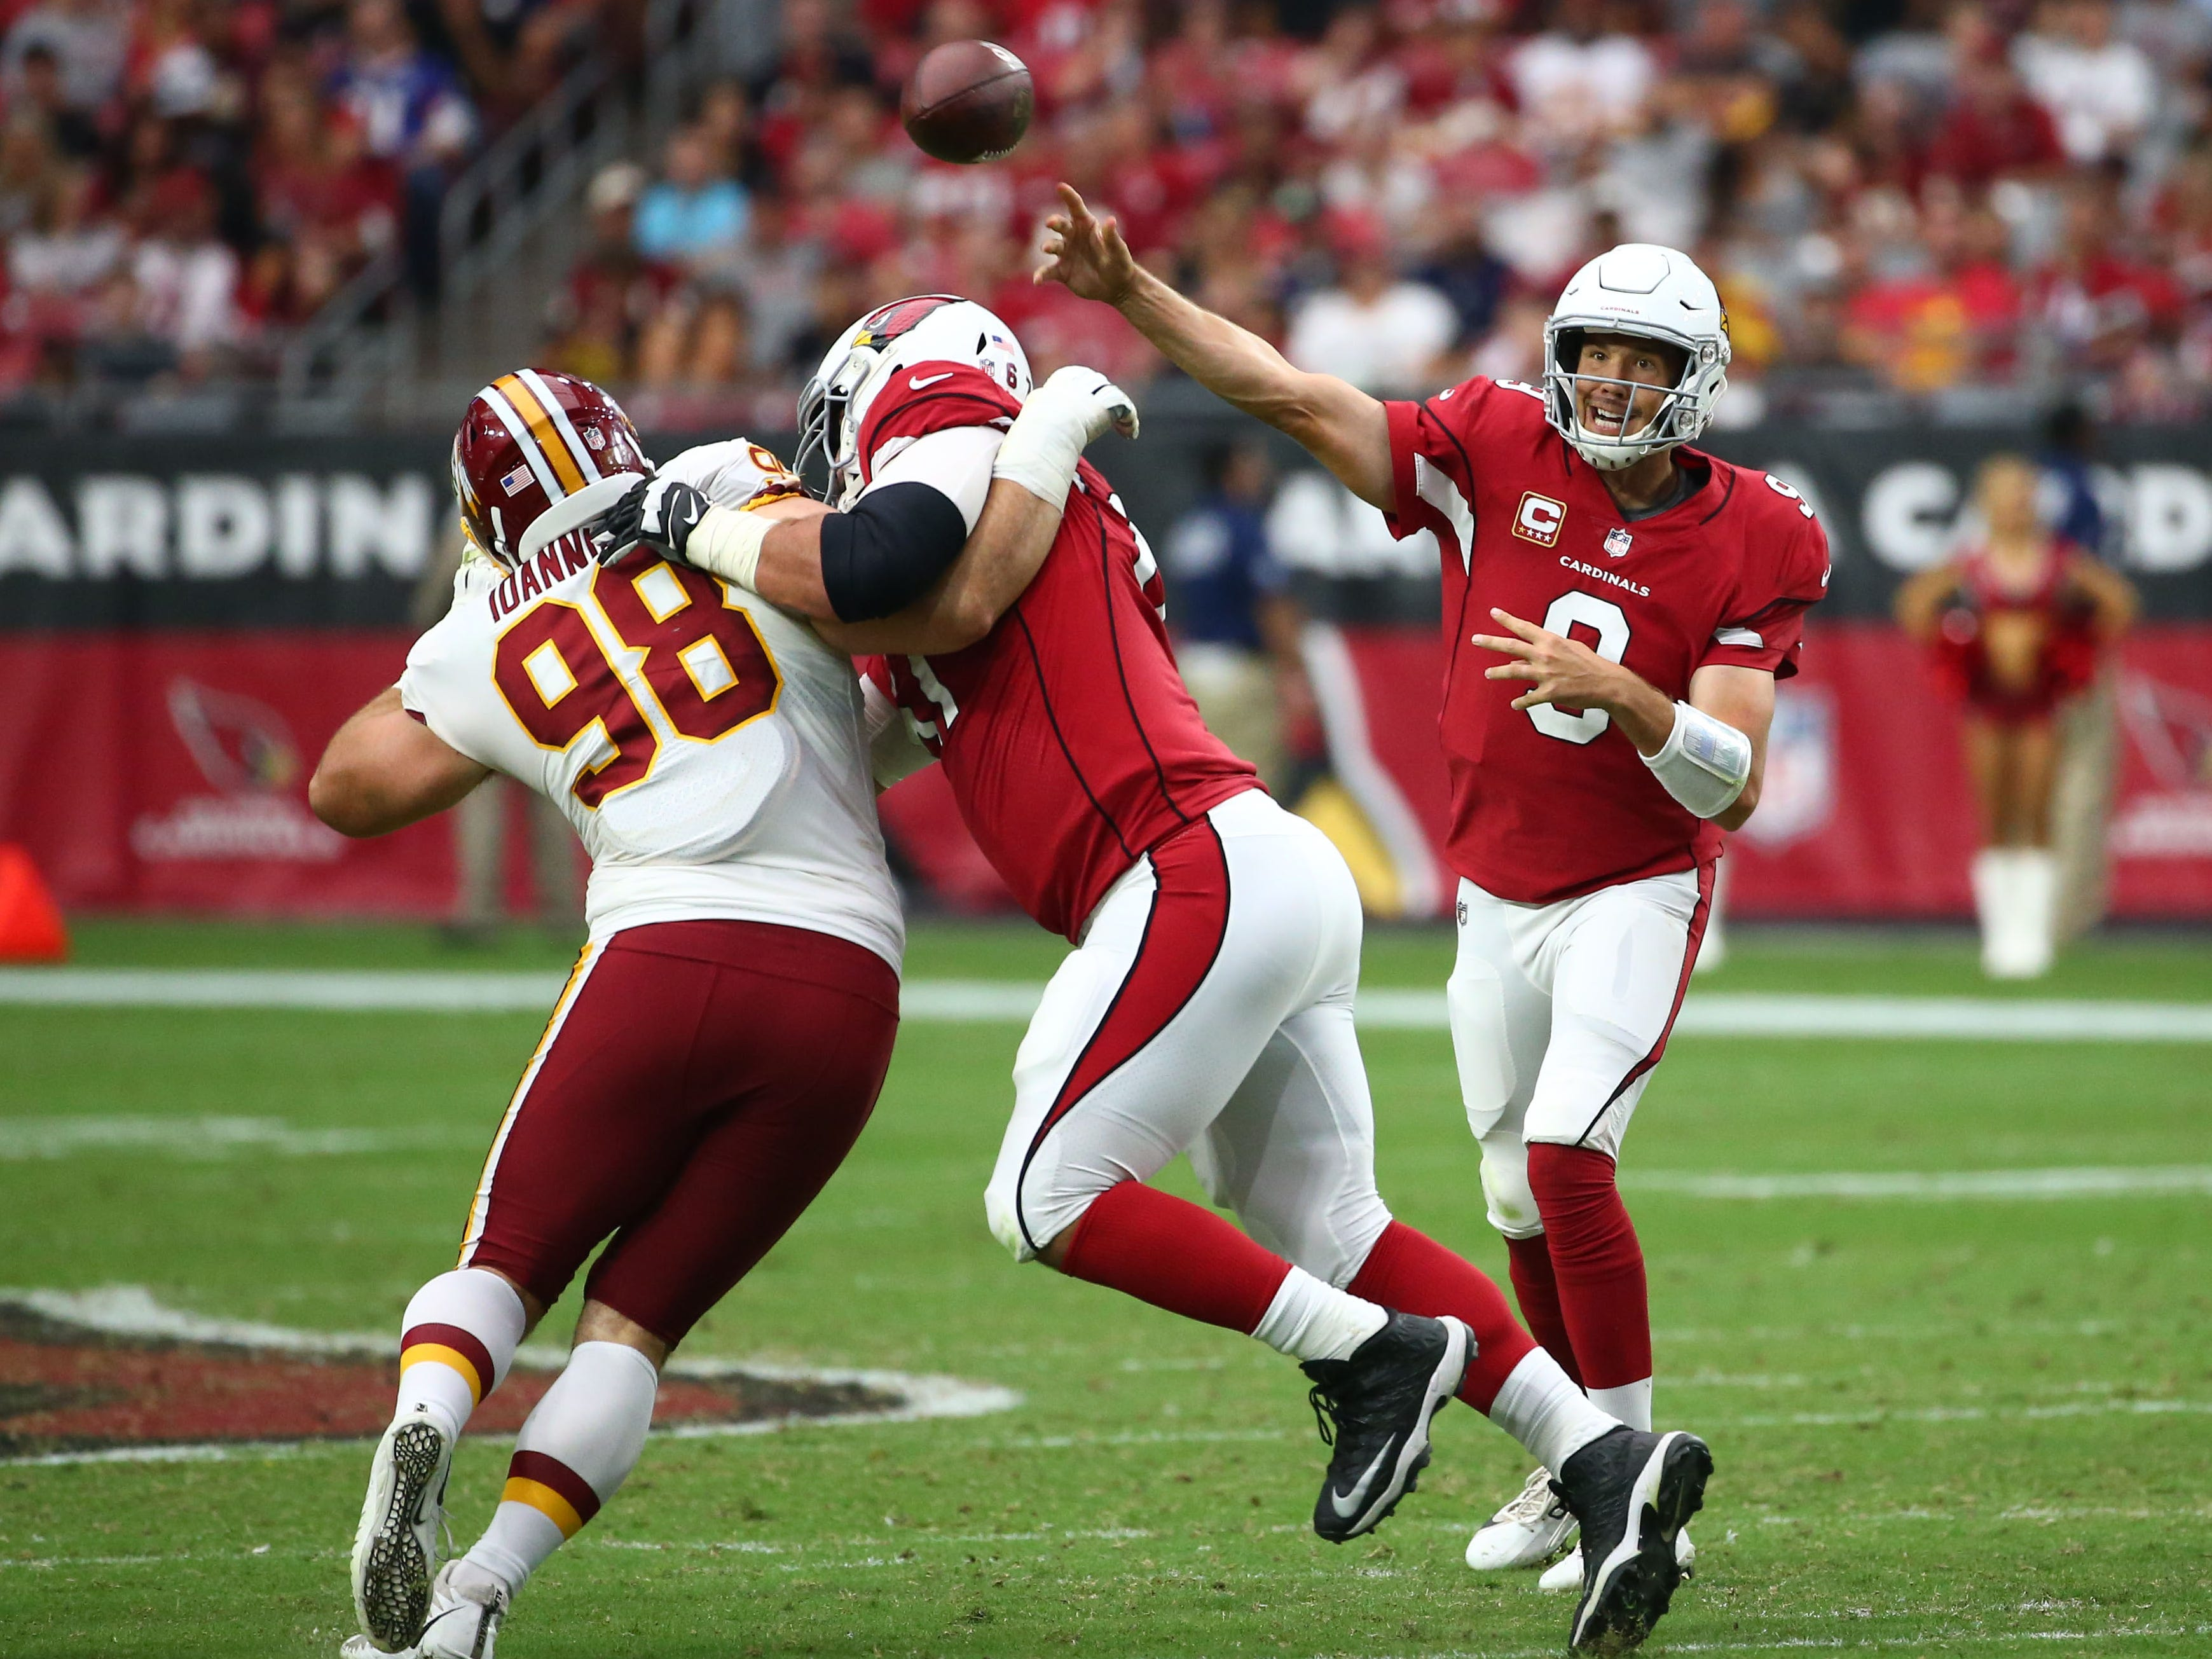 Arizona Cardinals quarterback Sam Bradford throw a pass against the Washington Redskins in the second half at State Farm Stadium.